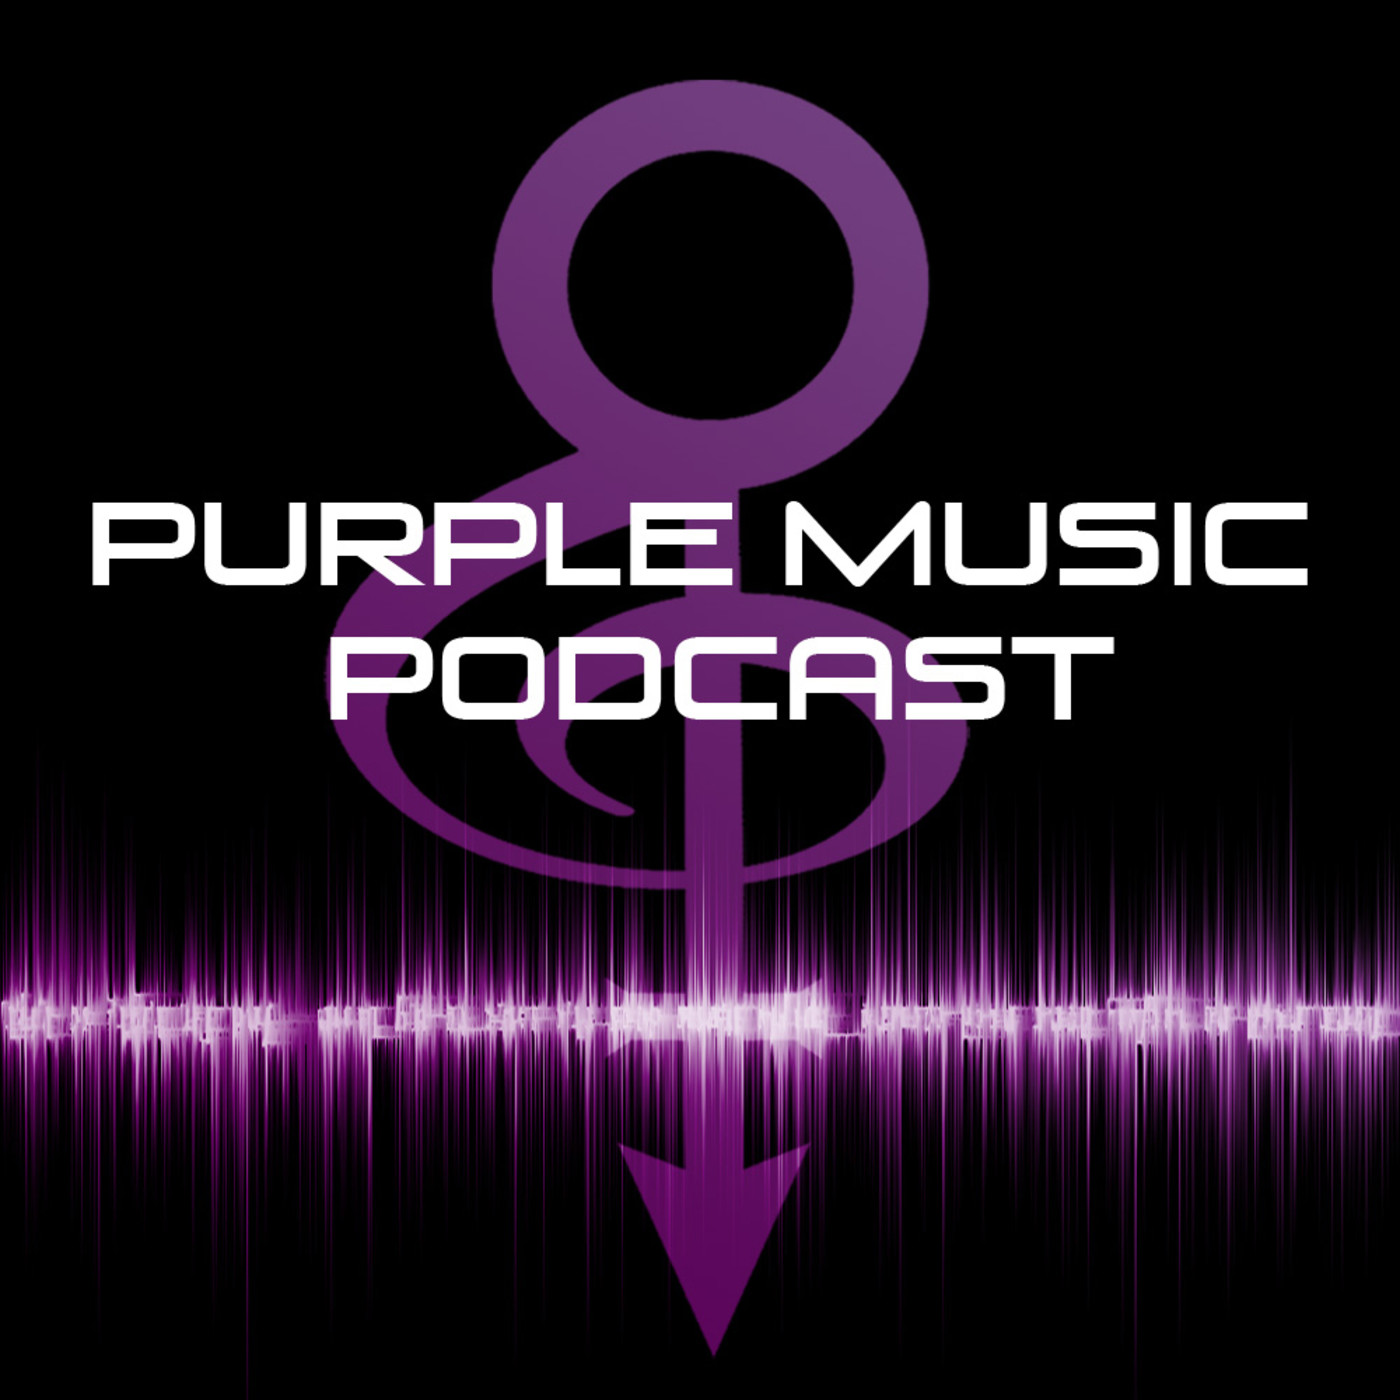 Purple Music -  Prince Podcast